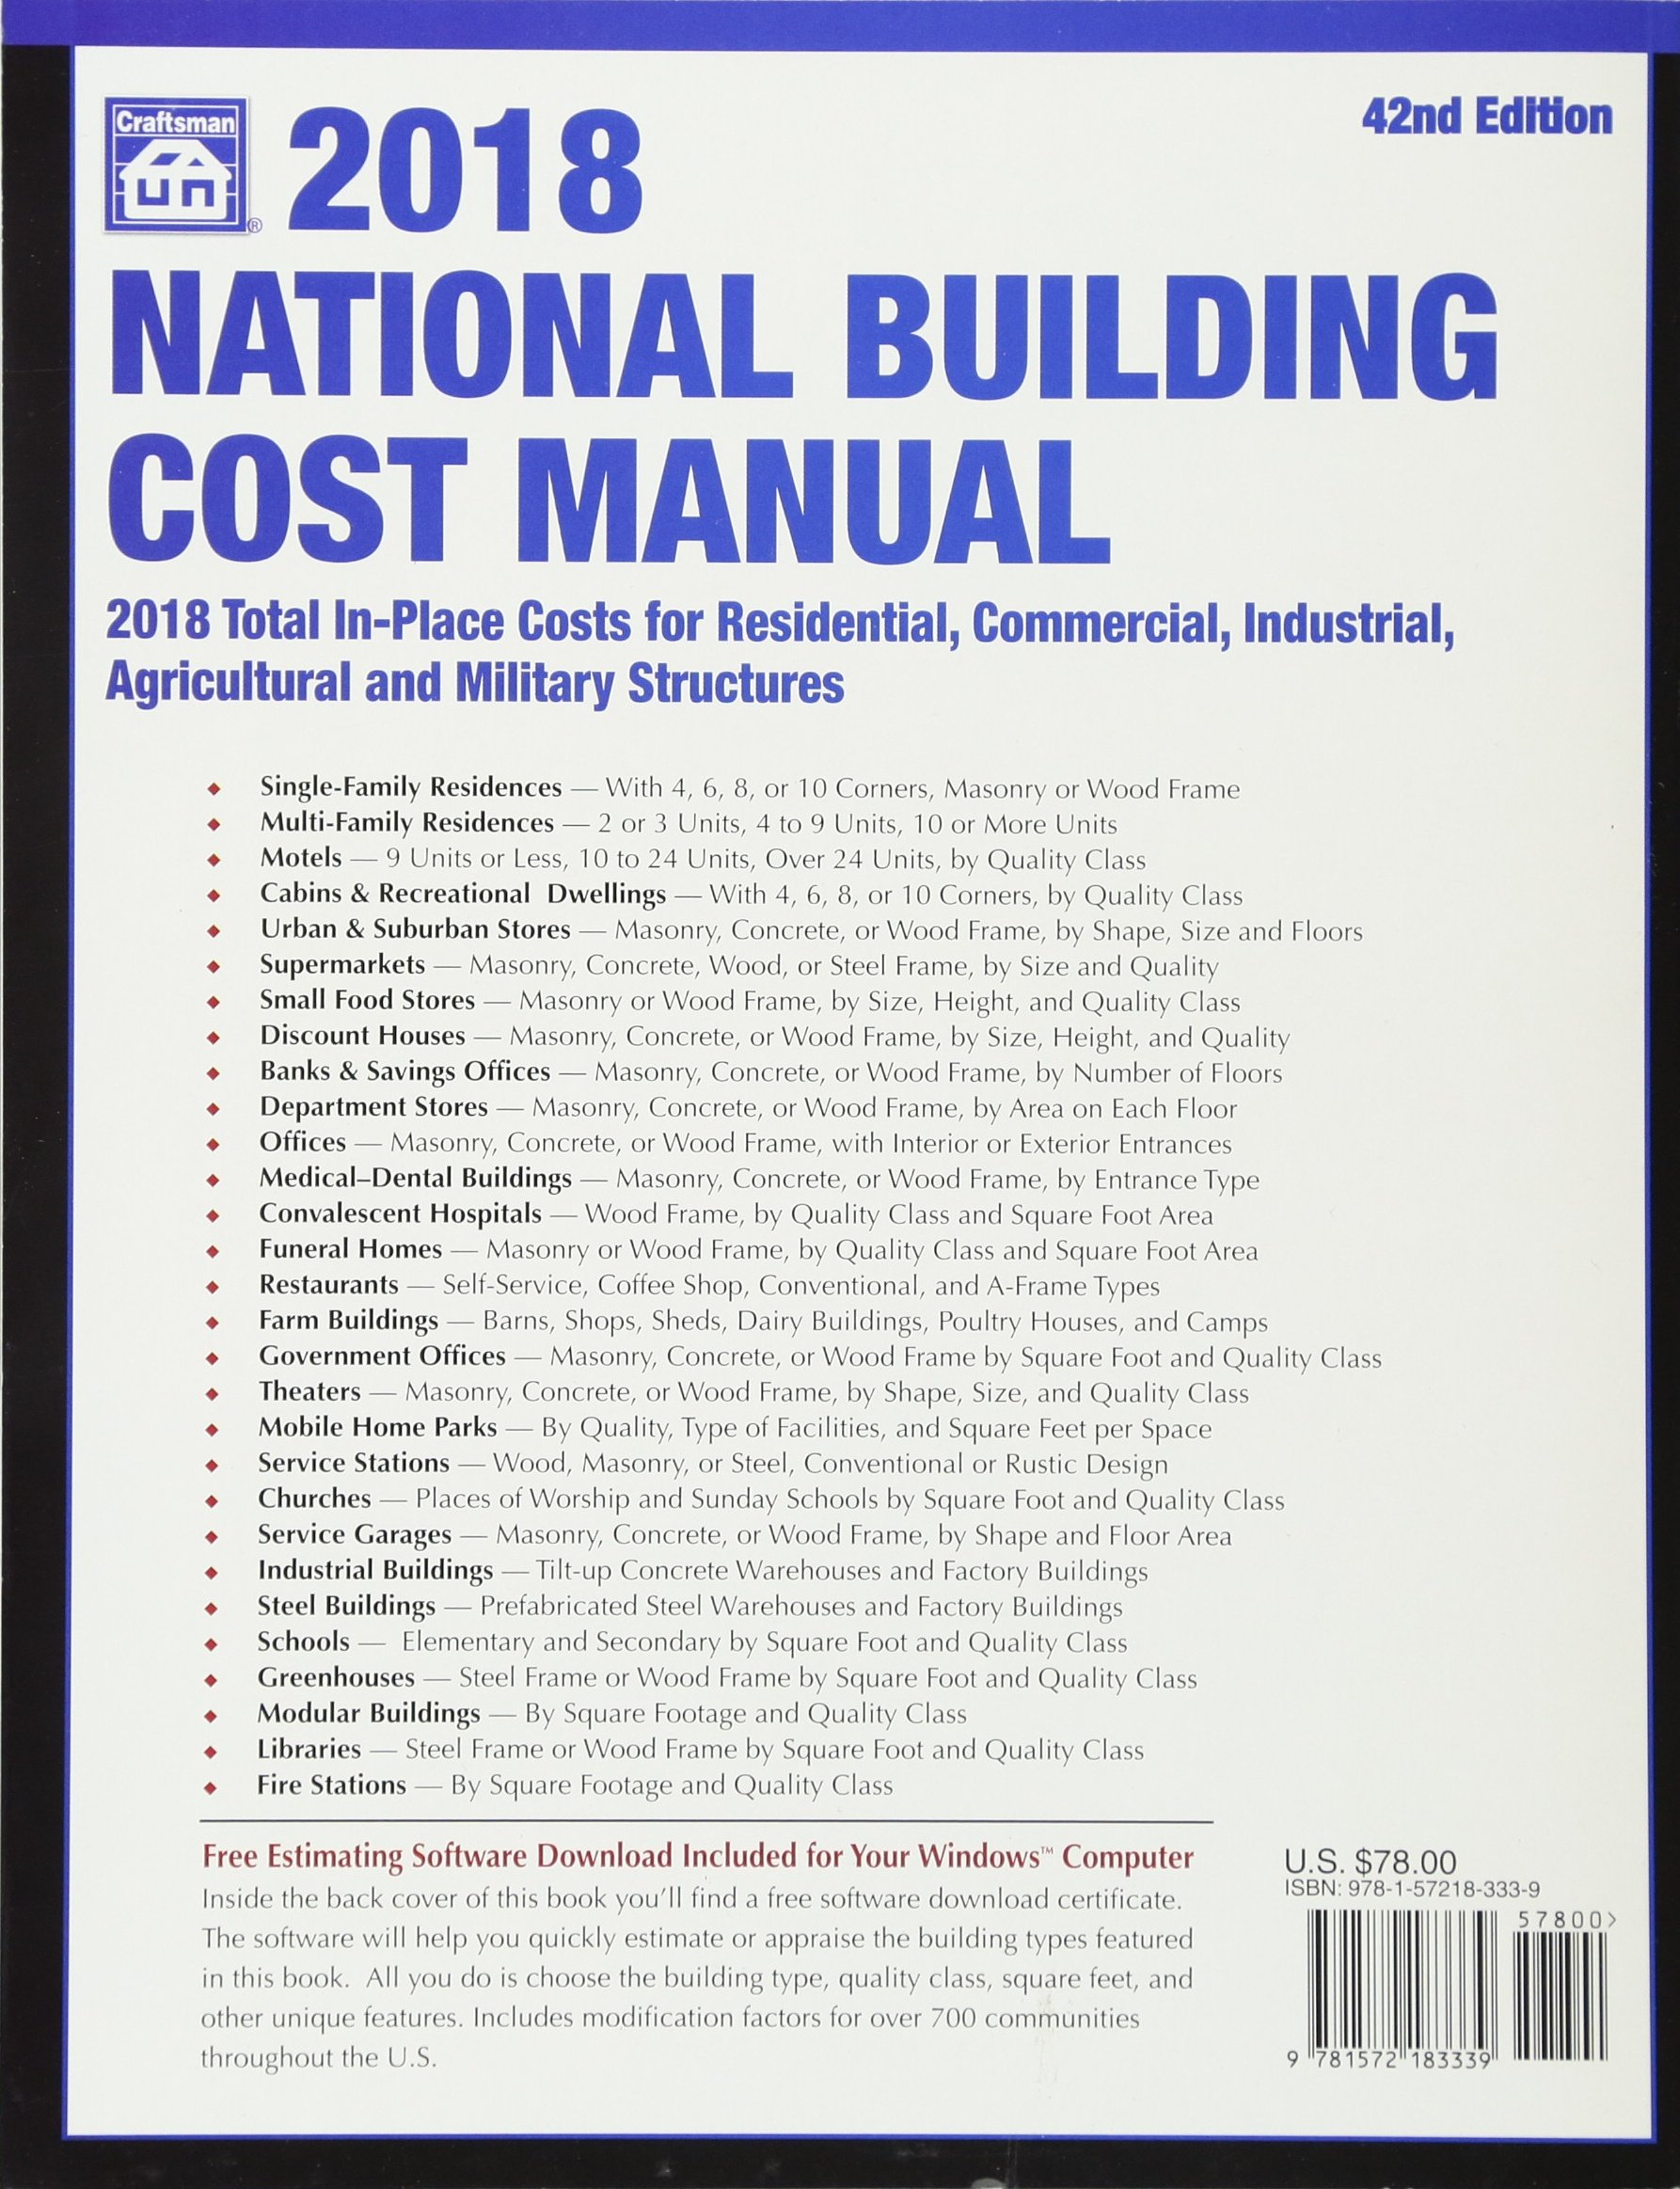 Buy National Building Cost Manual 2018 Book Online at Low